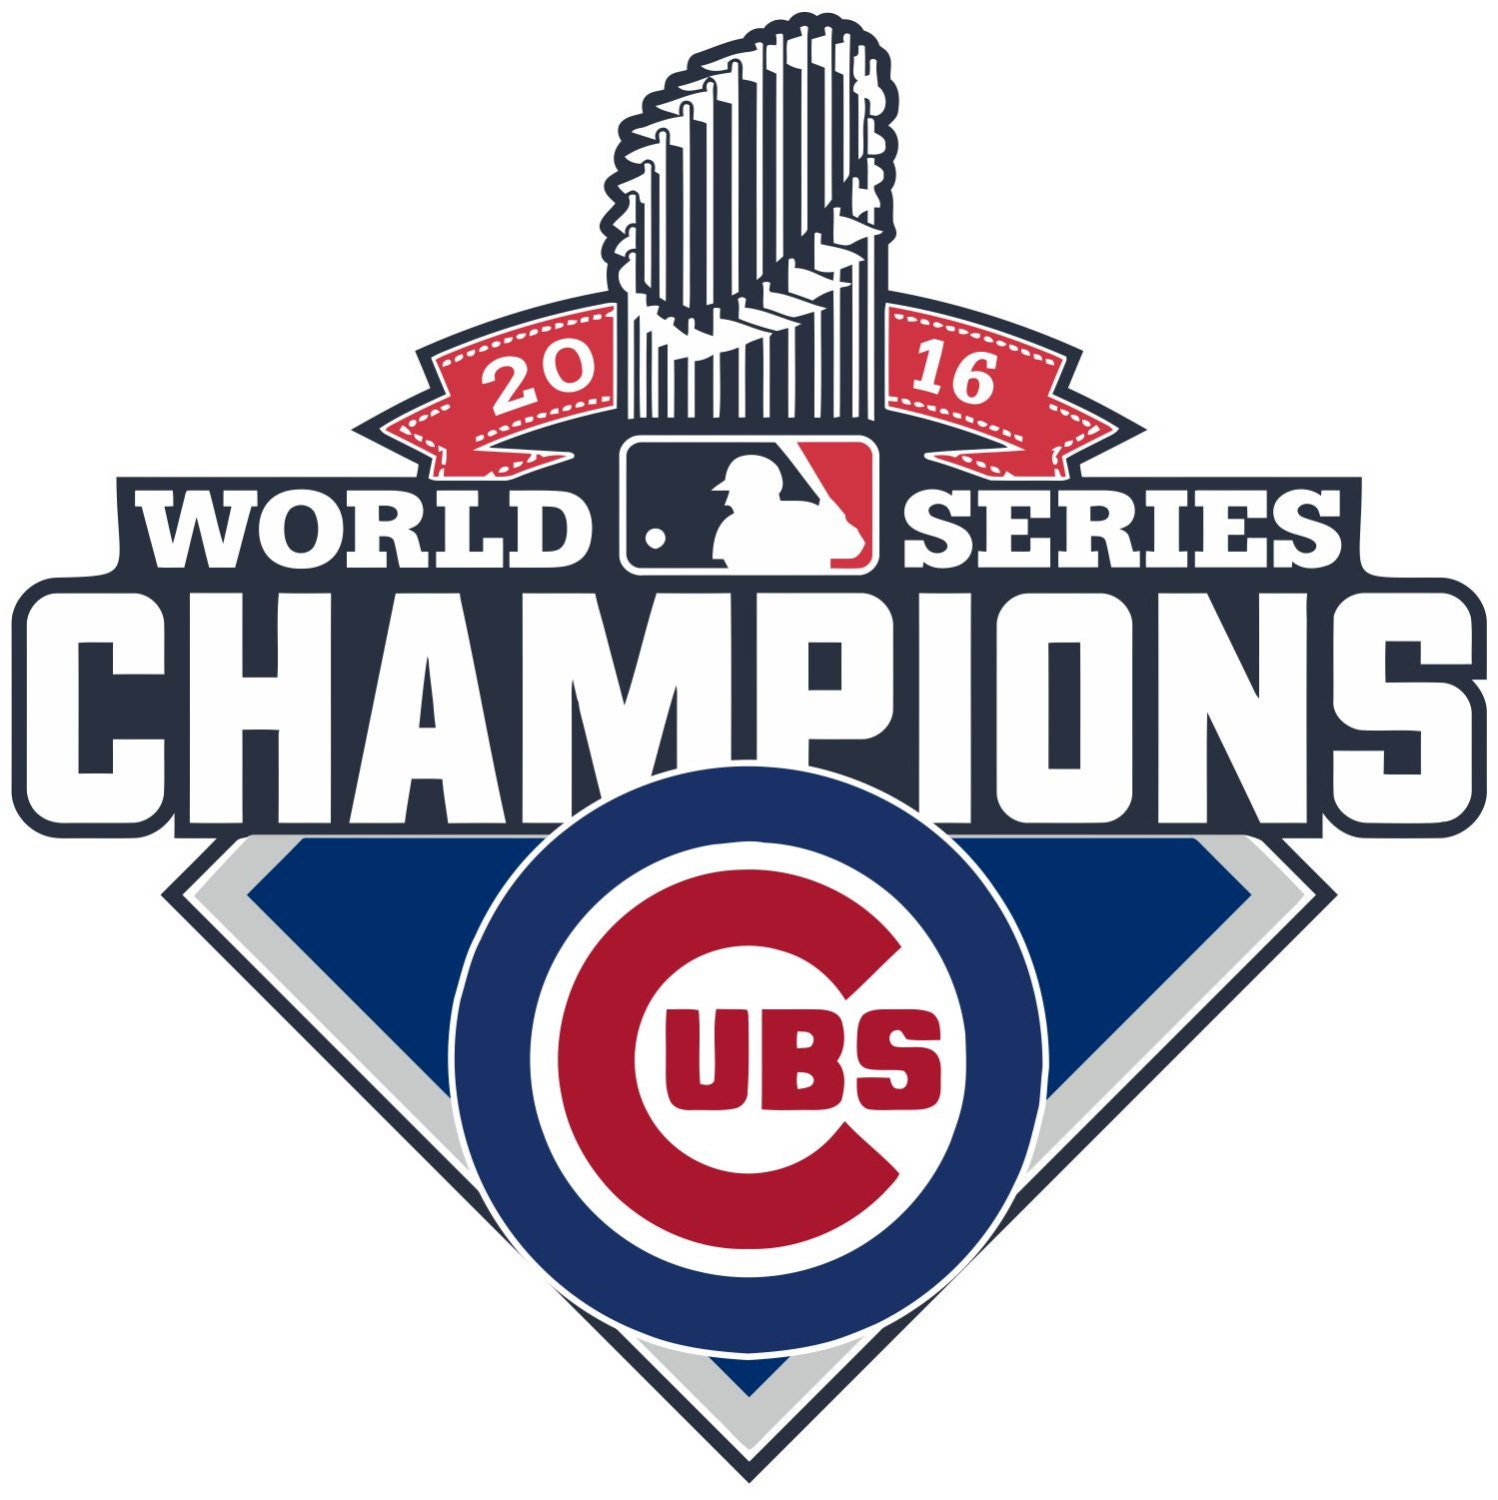 chicago cubs world series coloring pages - chicago cubs world series 2016 champions mlb decal sticker